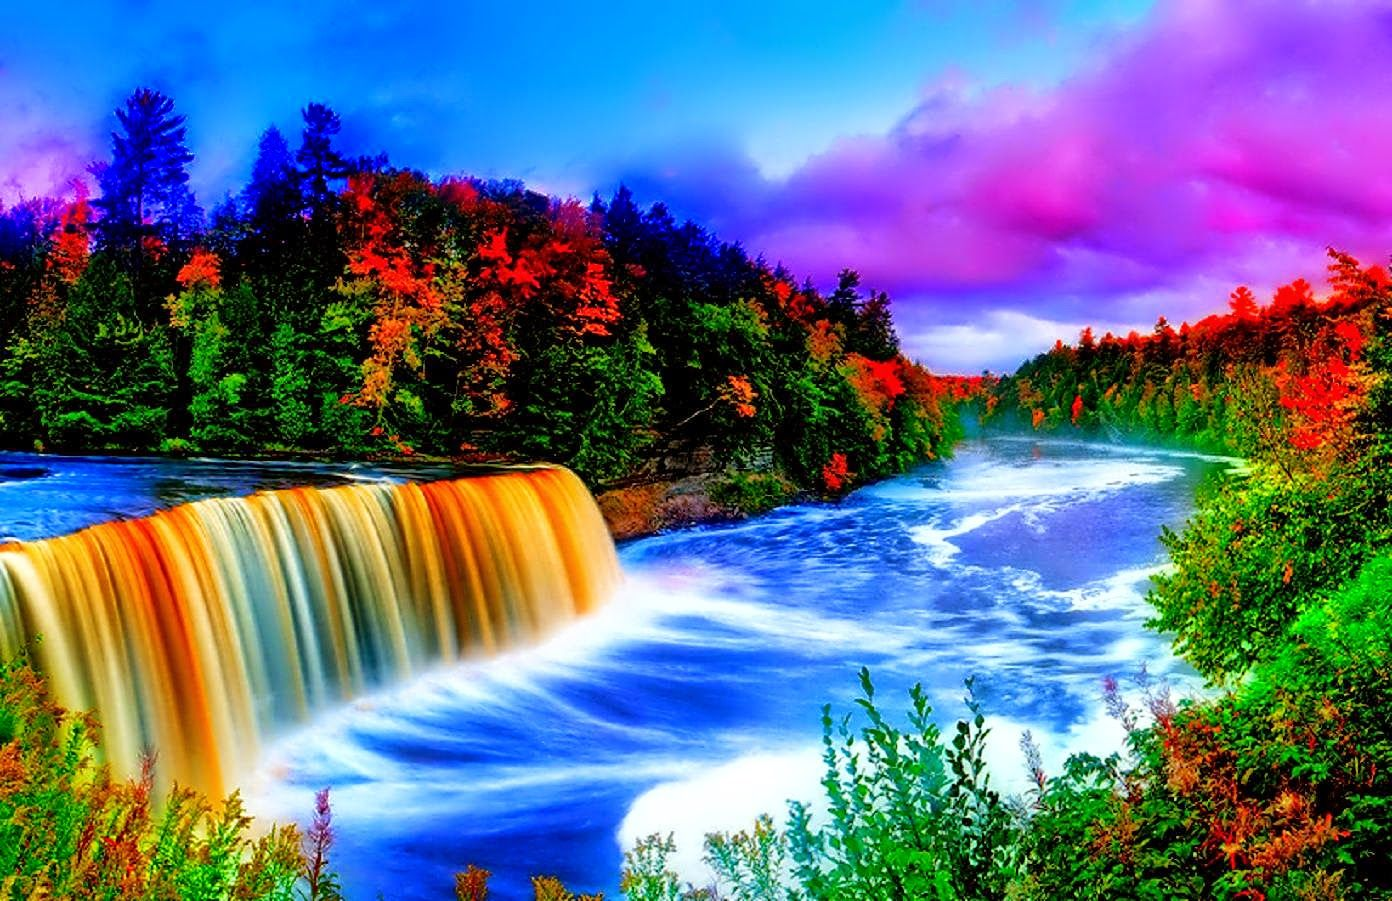 Images And Pictures Of Nature Beautiful Nature Scene Beautiful Nature Scenes Waterfall Wallpaper Rainbow Waterfall